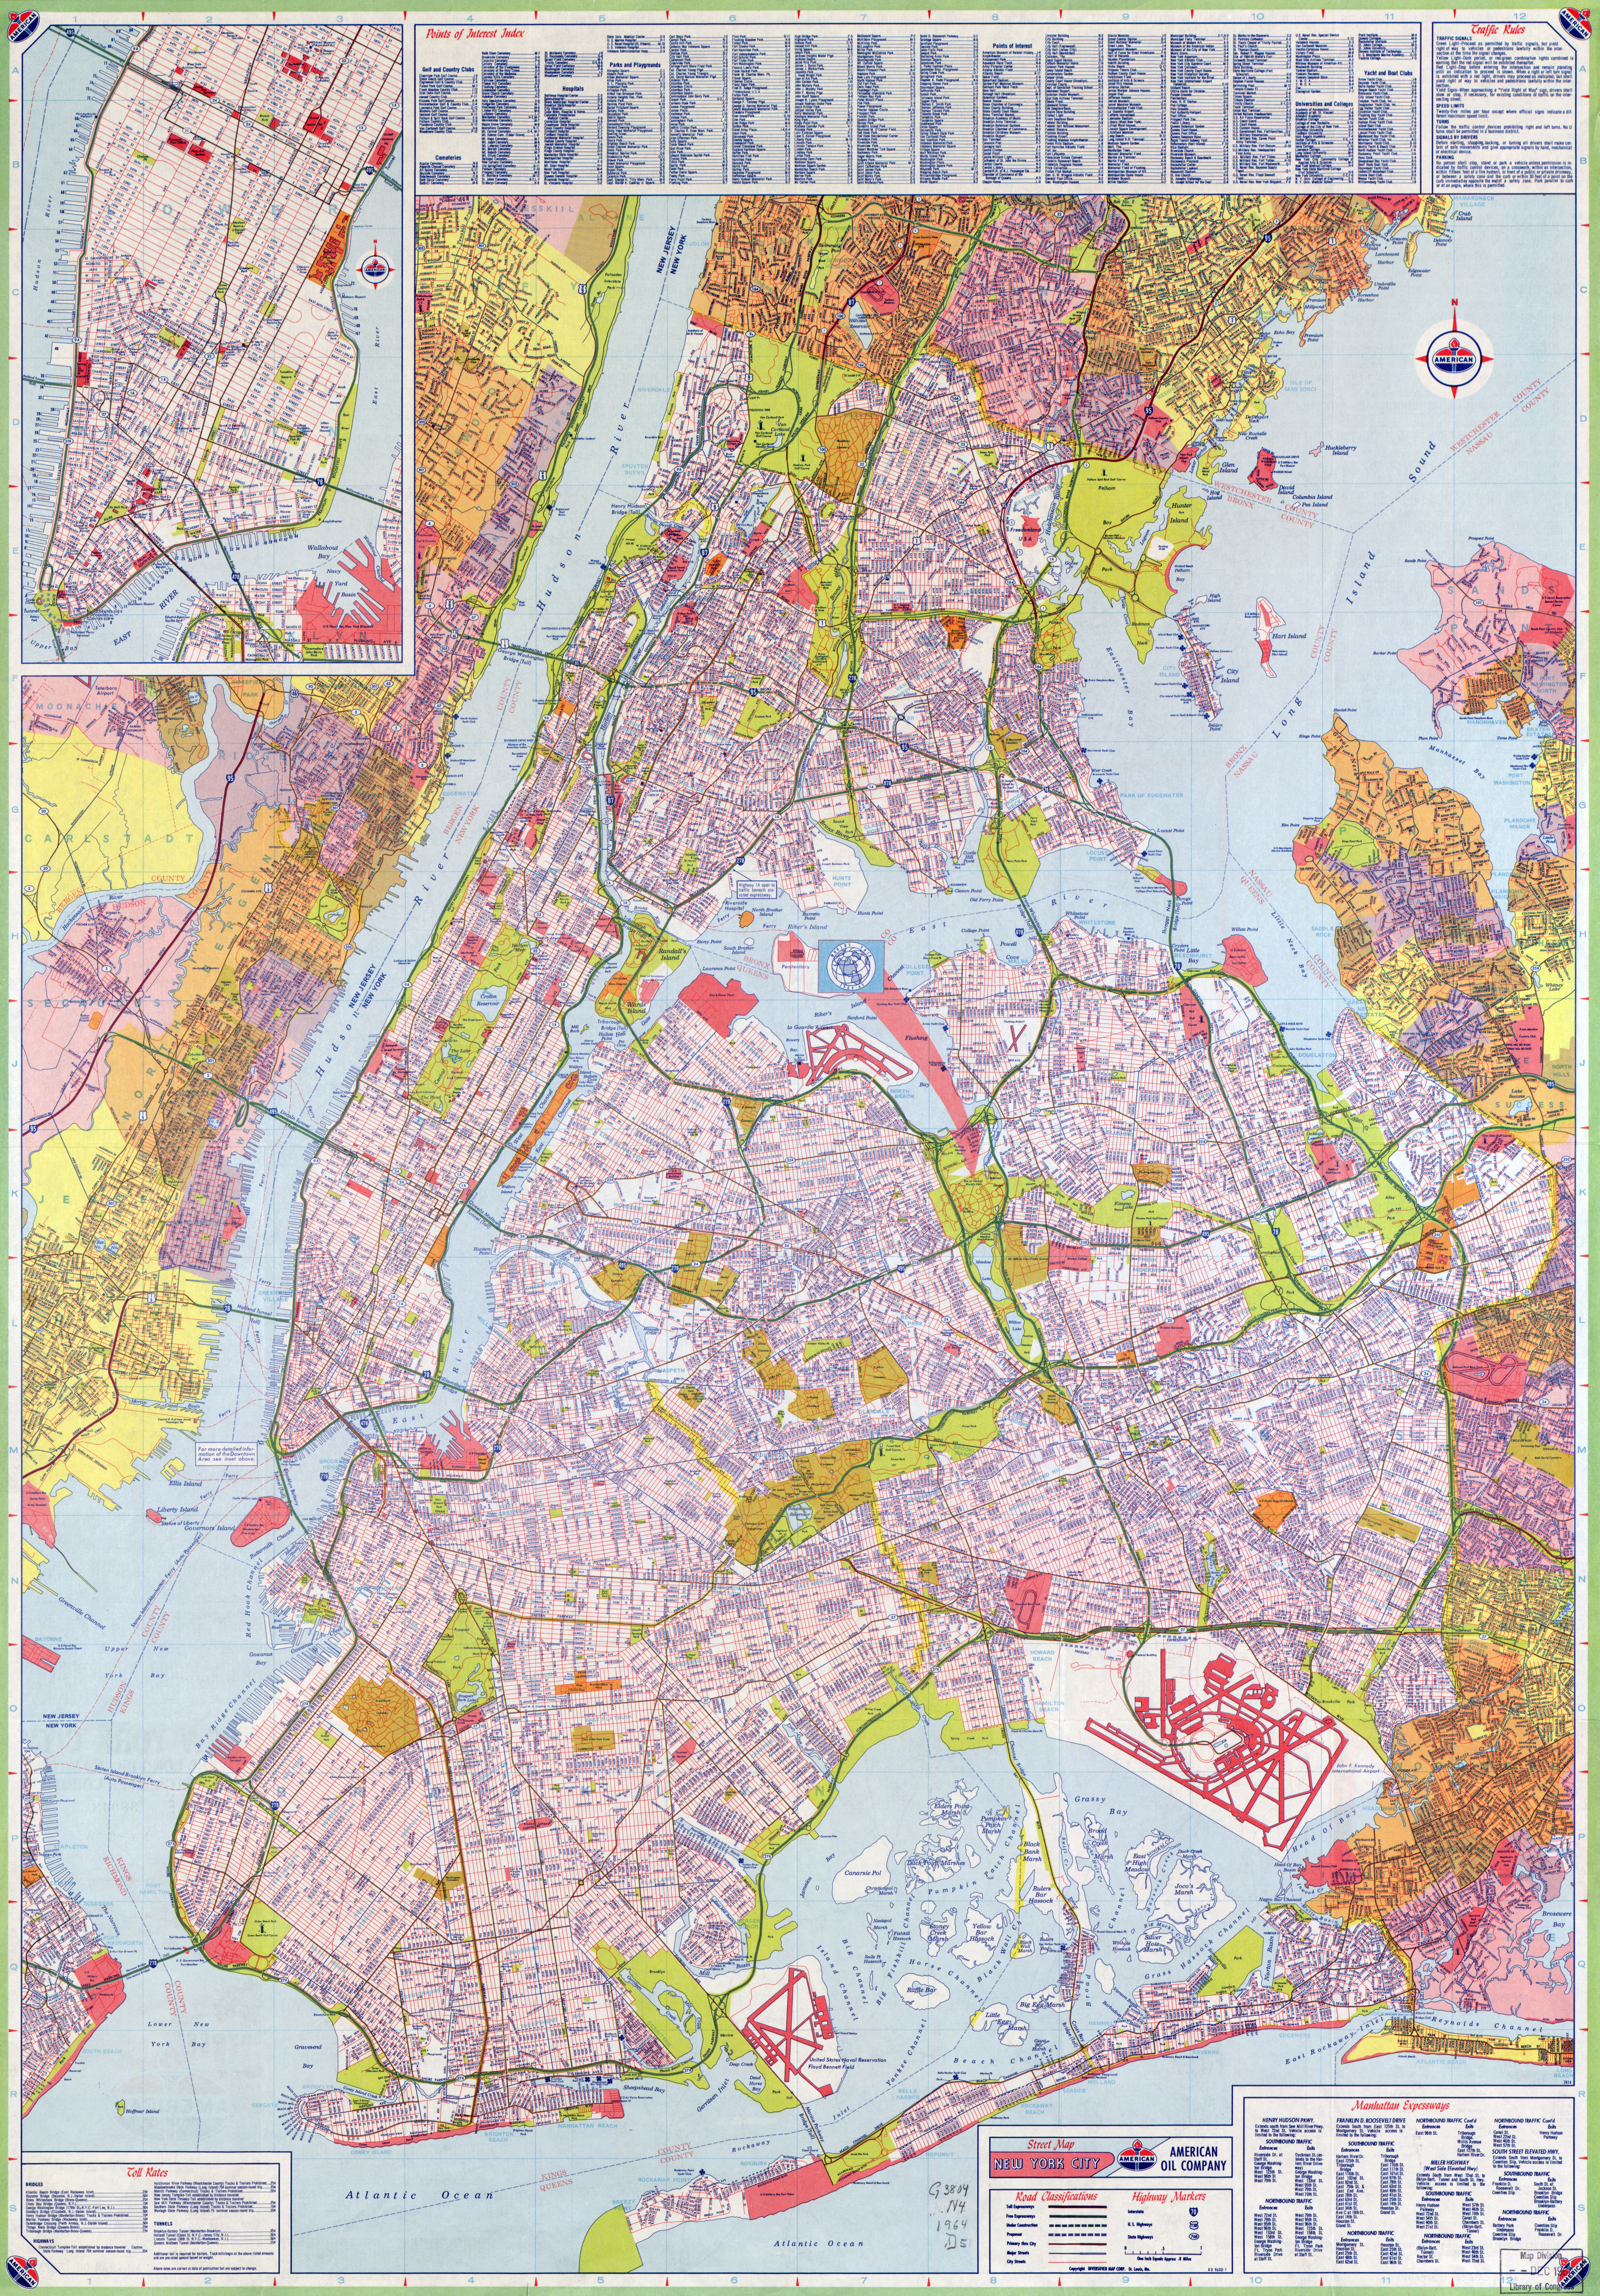 large-scale-HiRes-detailed-full-road-map-of-New-York-city-USA-with-all-street-names.jpg